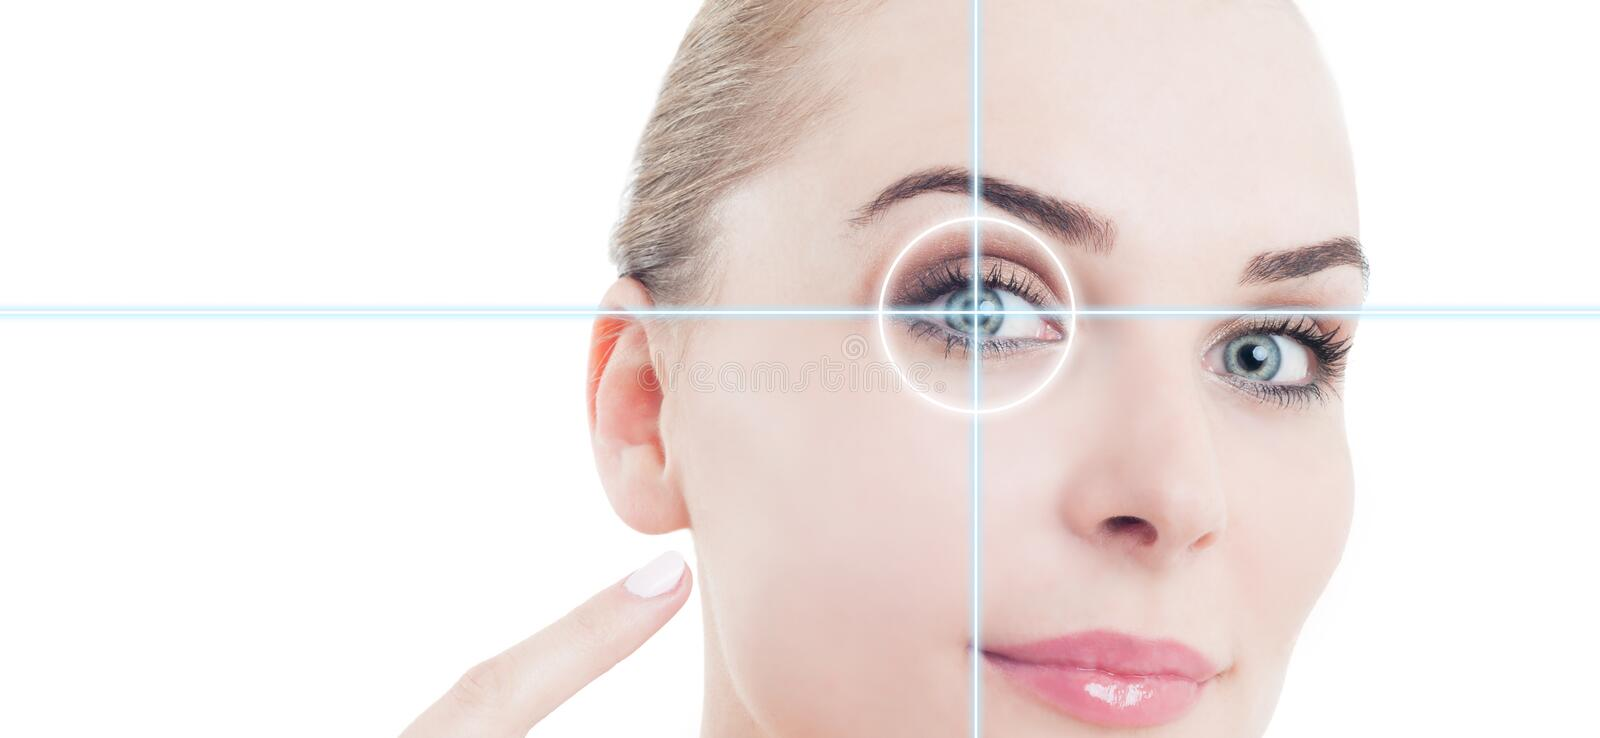 Close-up portrait of young and beautiful woman pointing to eye stock image